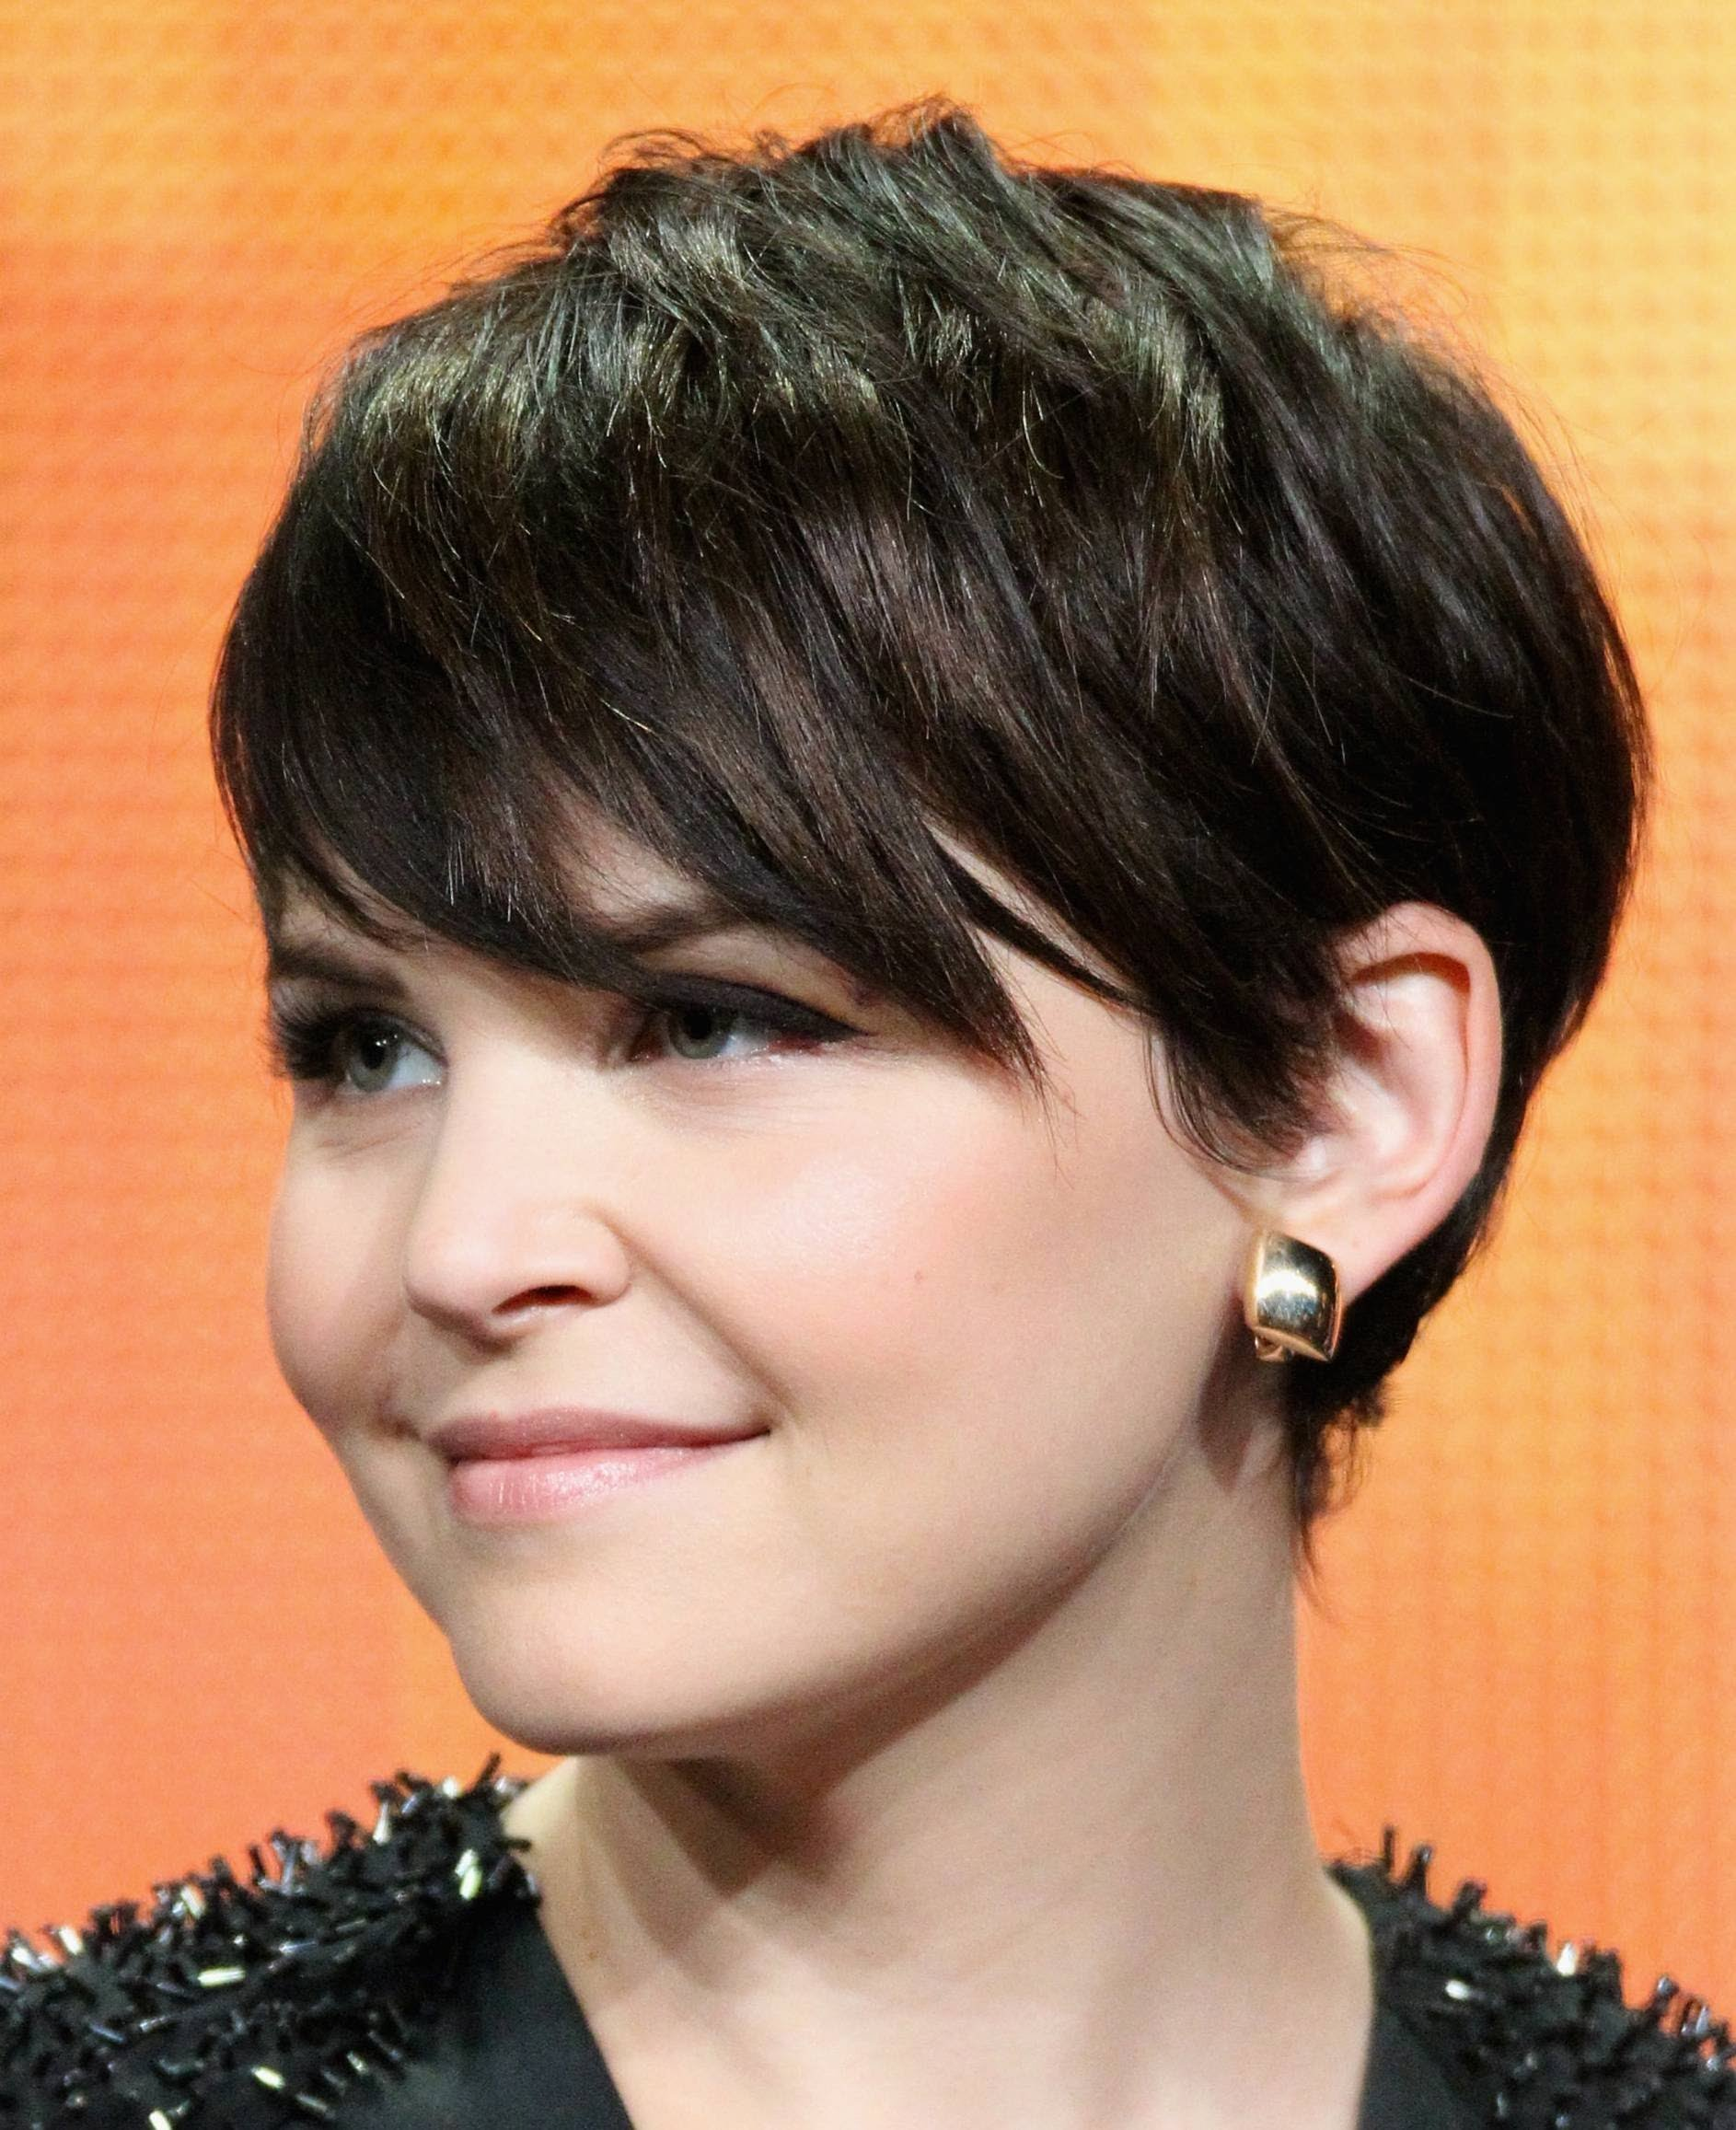 Free Pixie Haircut The Ultimate Pixie Cuts Guide Wallpaper